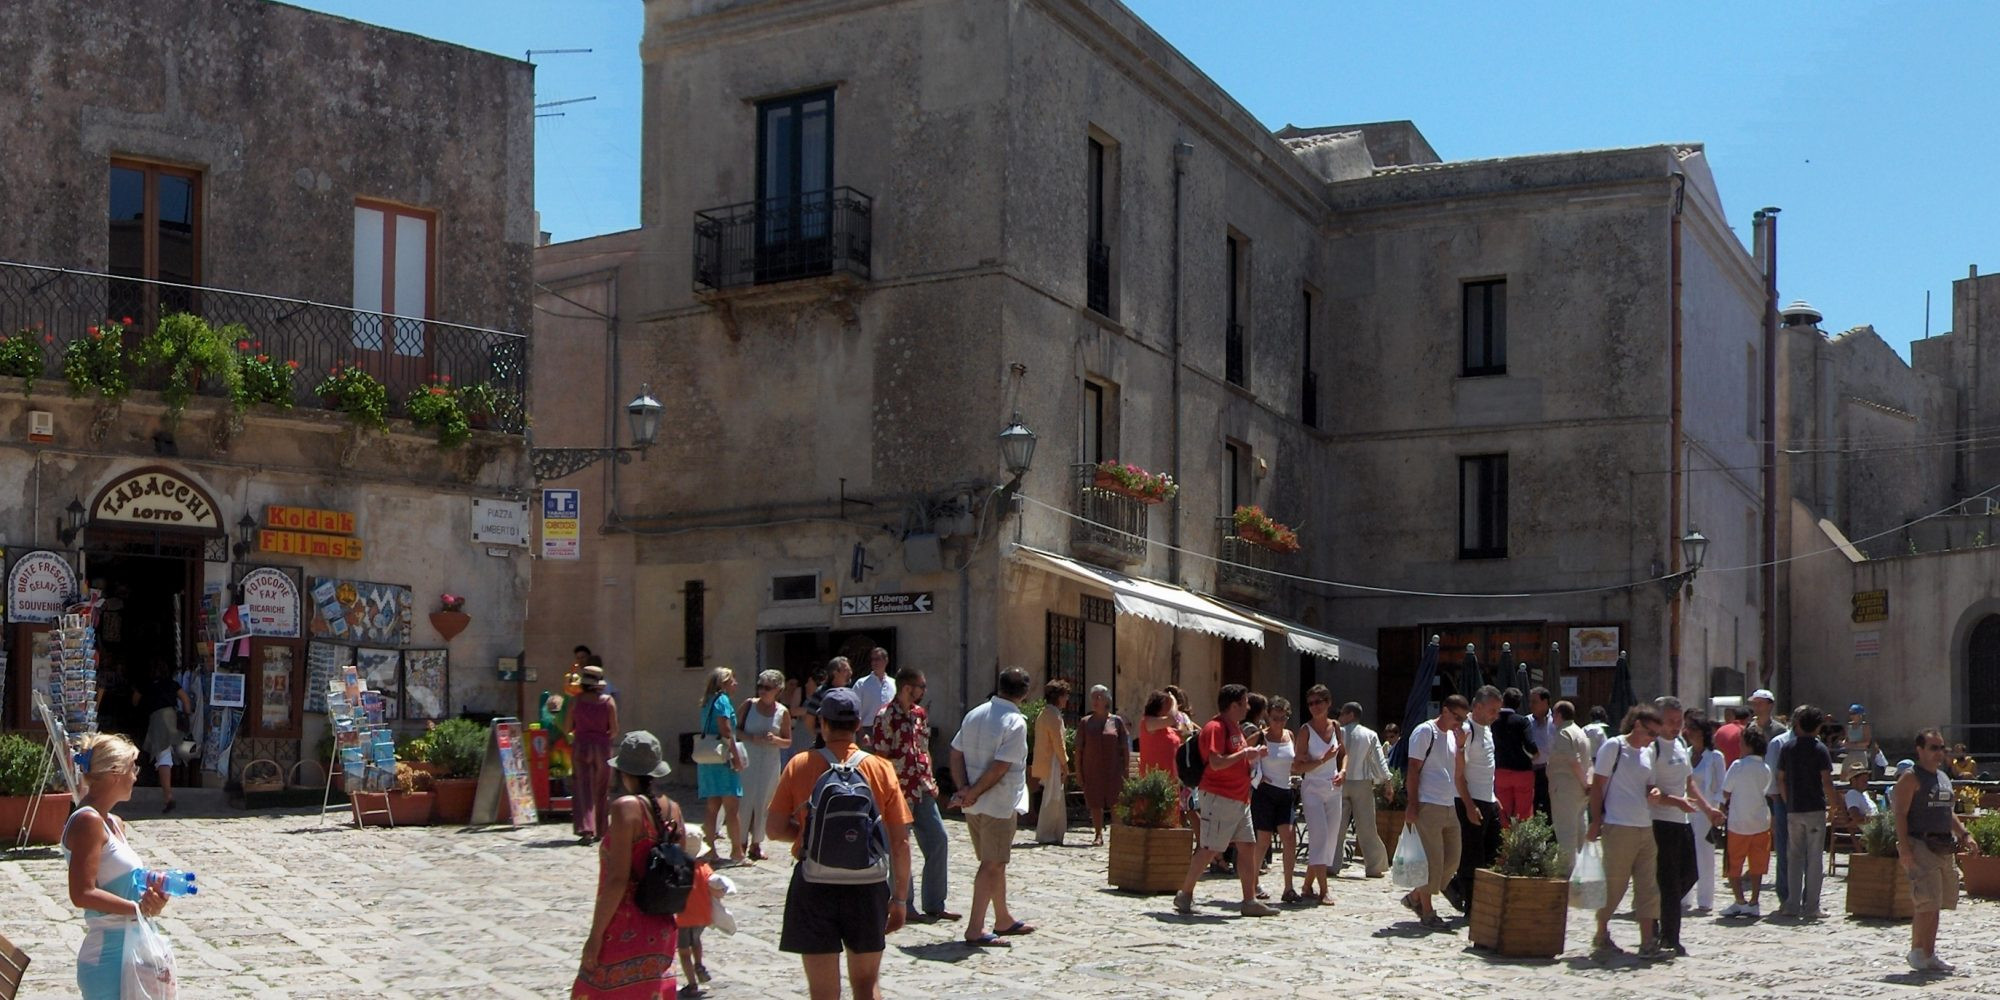 Erice, the main square